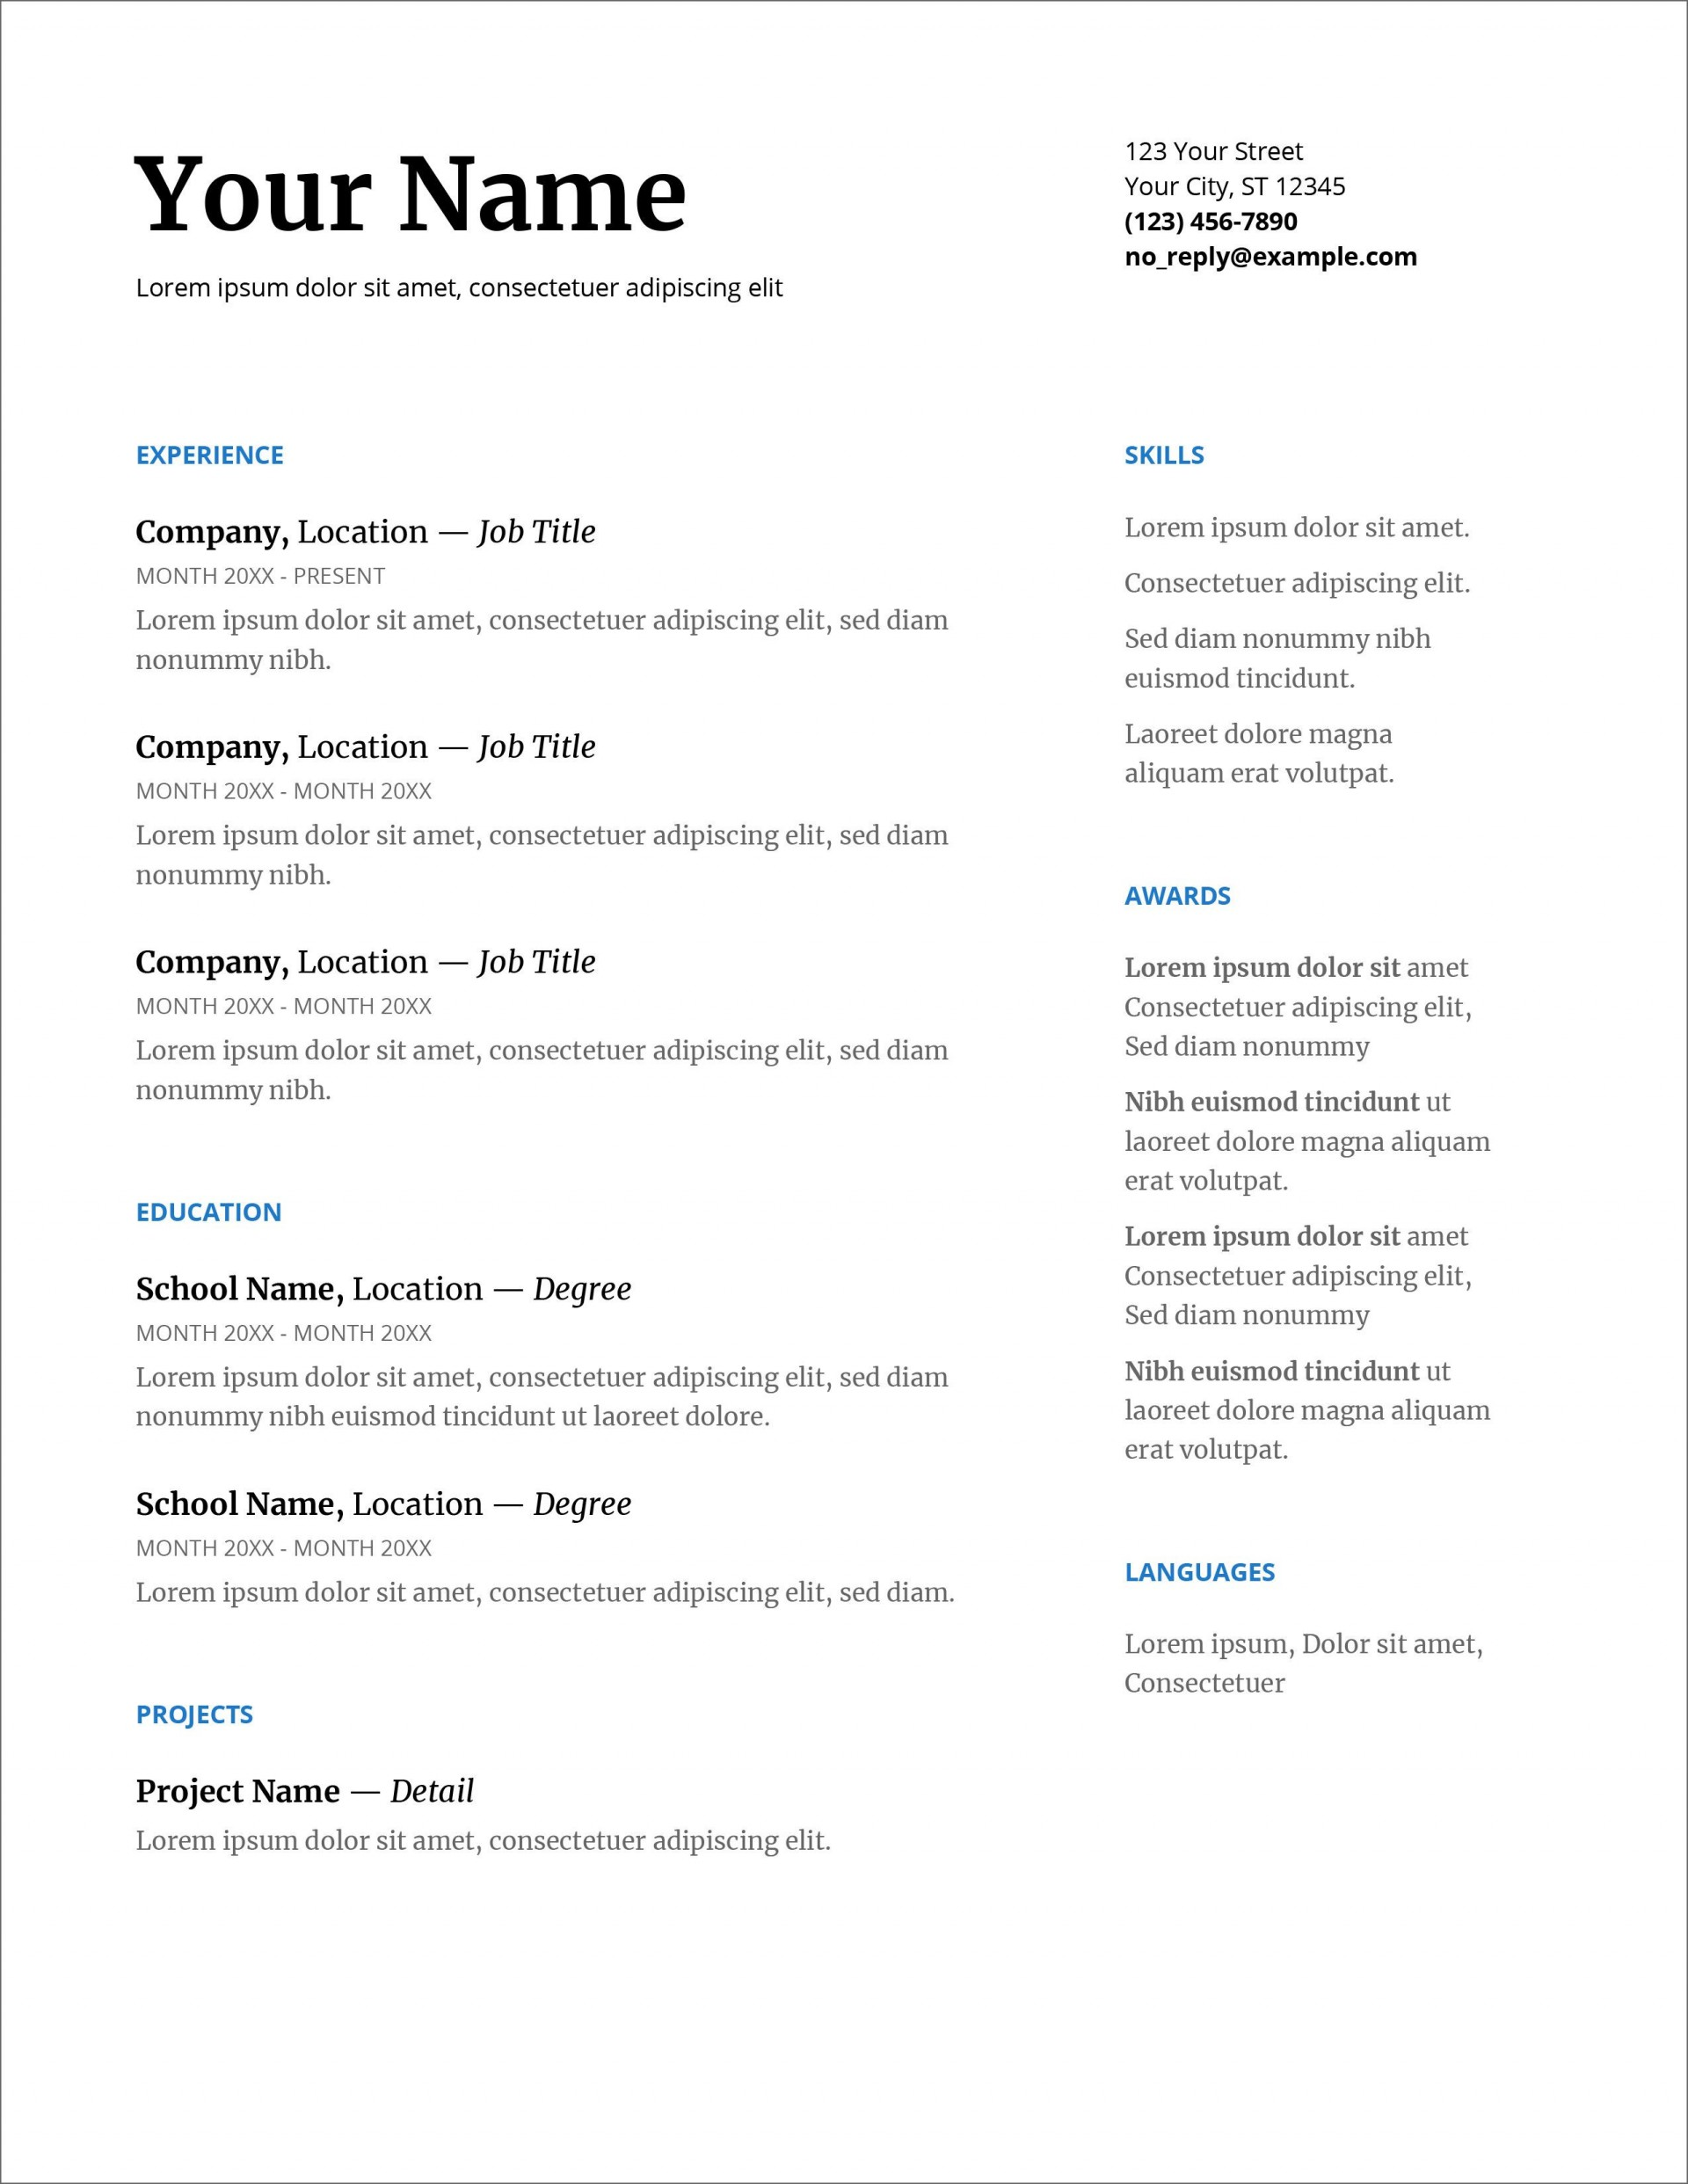 007 Fearsome Download Resume Template Word 2007 High Resolution 1920